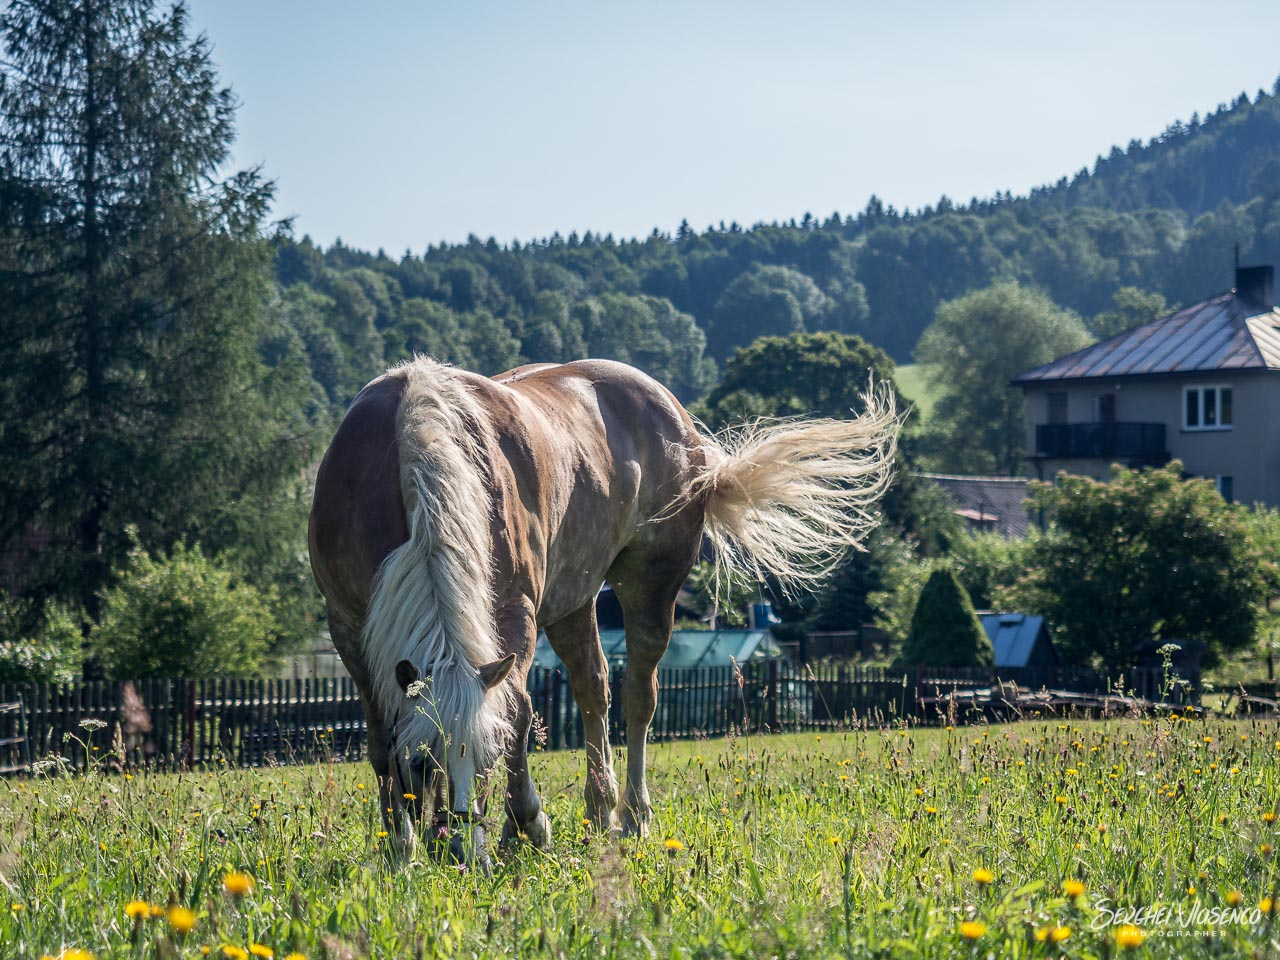 A grazing horse on a meadow captured during the trip to the Czech mountains.